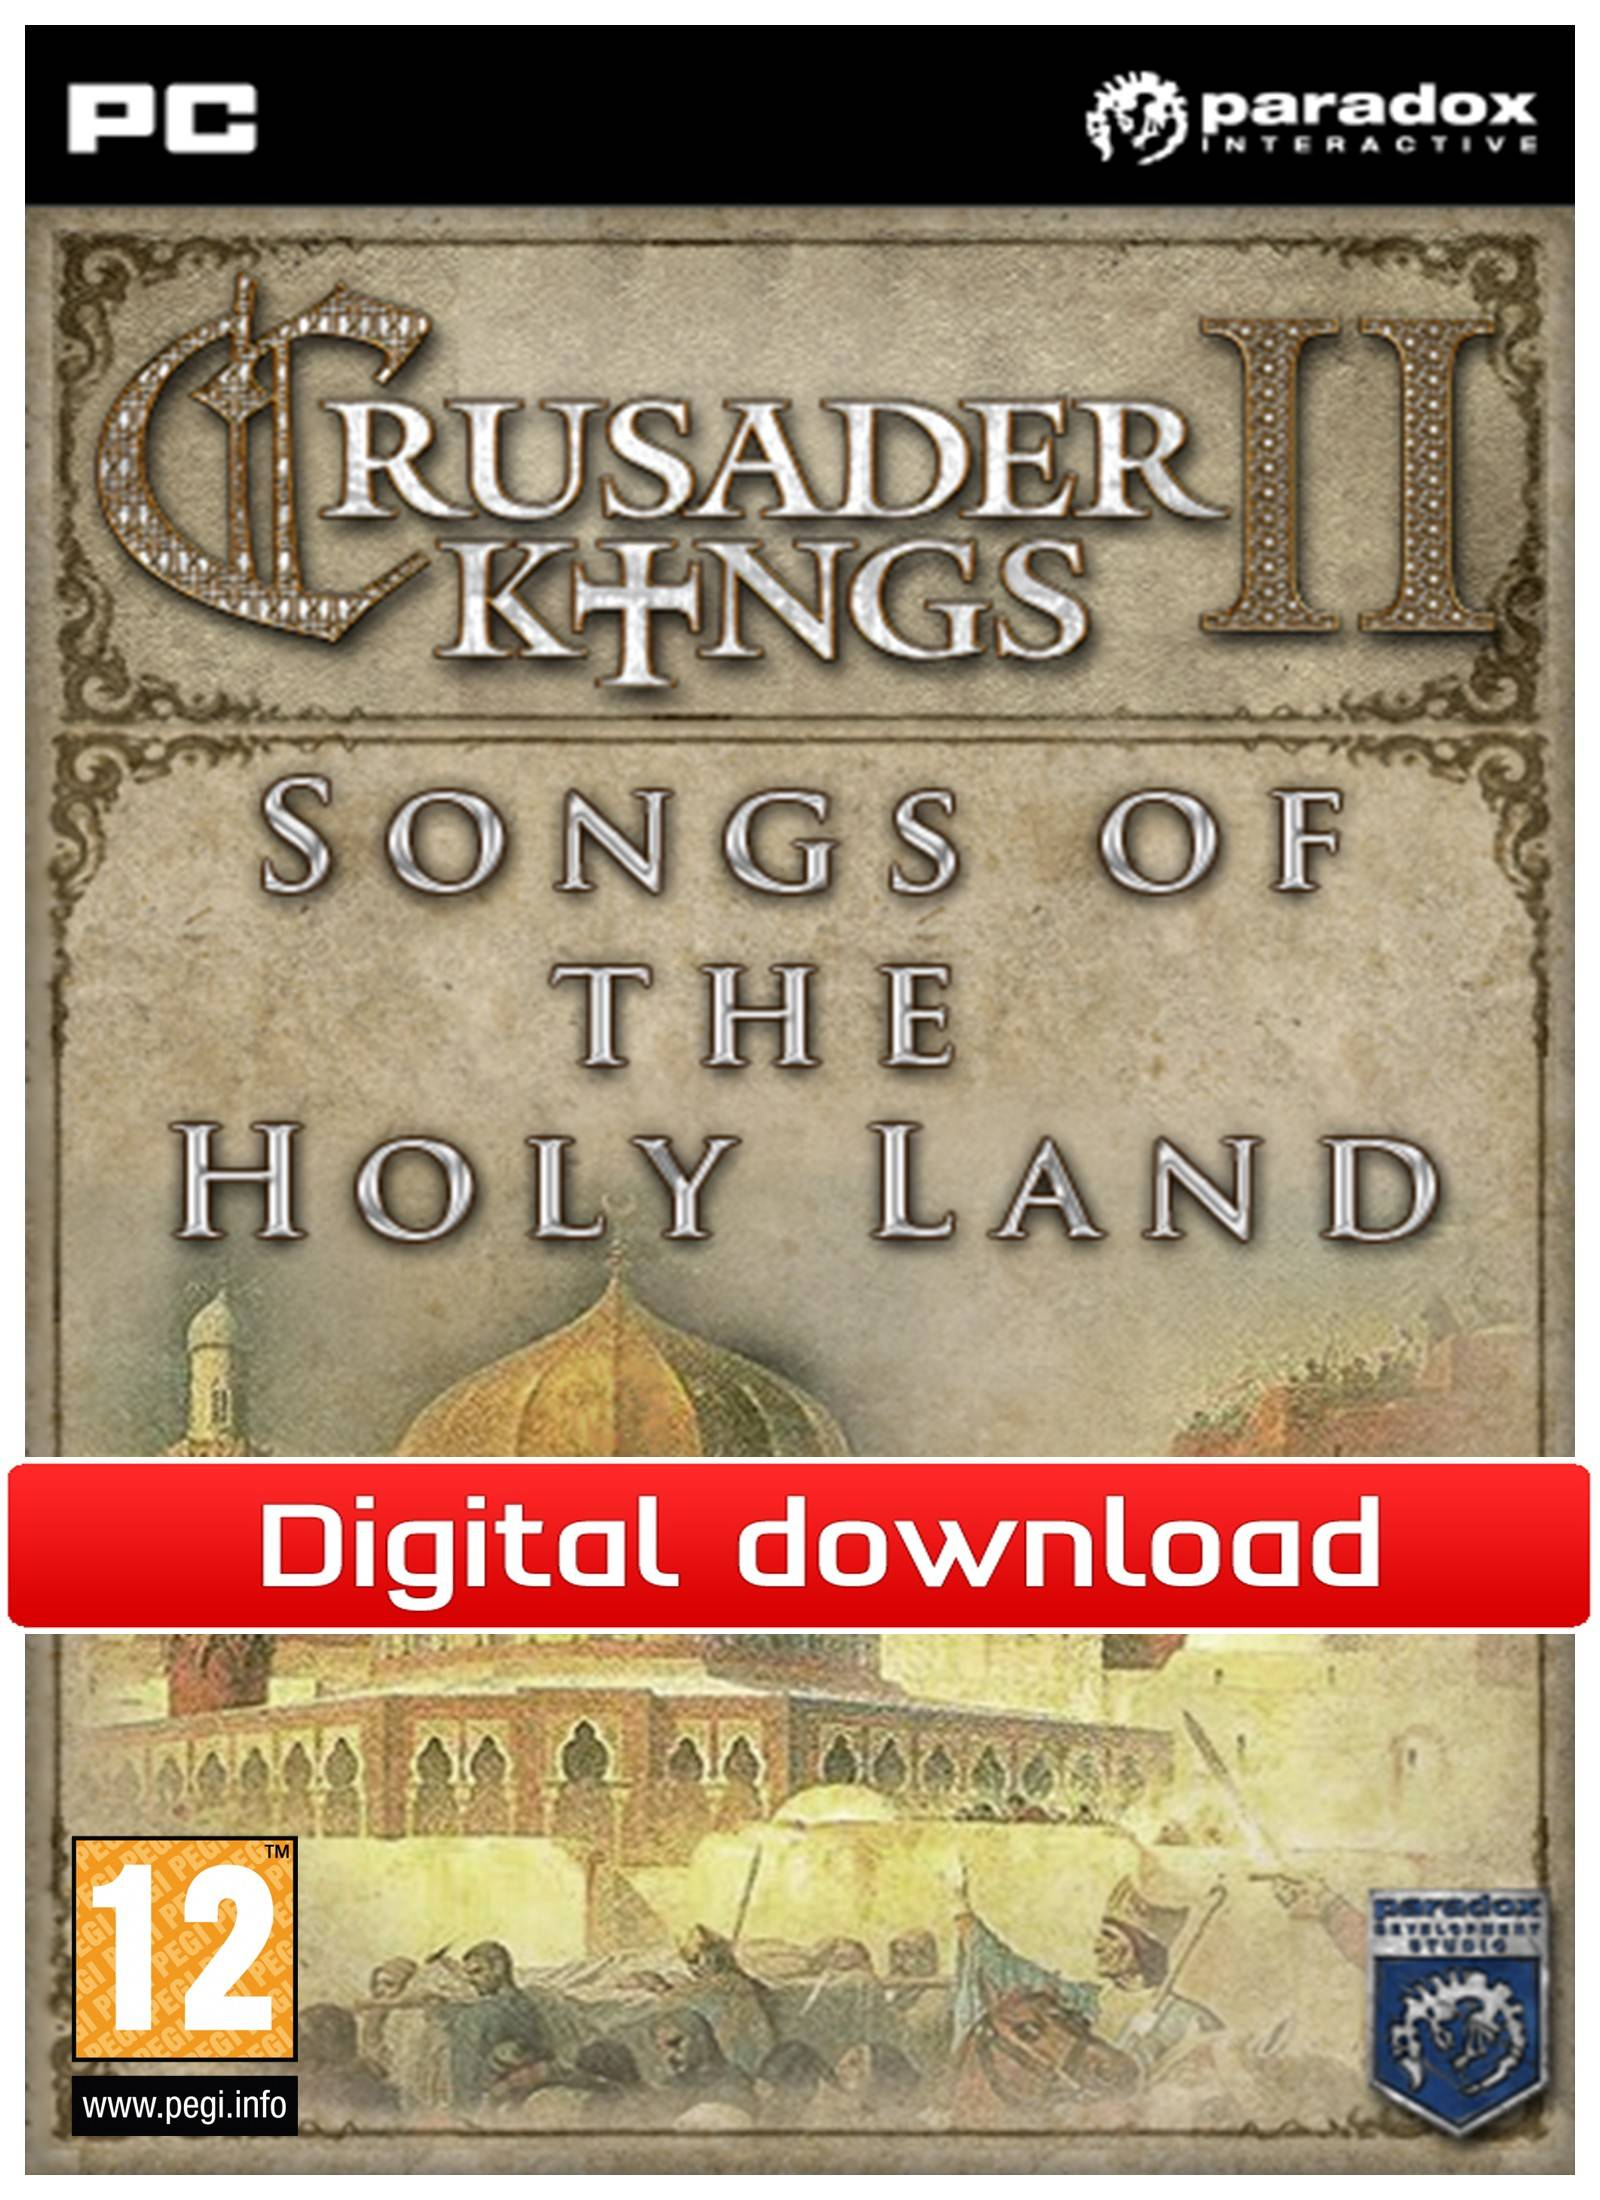 Paradox Crusader Kings 2: DLC Songs of the Holy Land (Download)